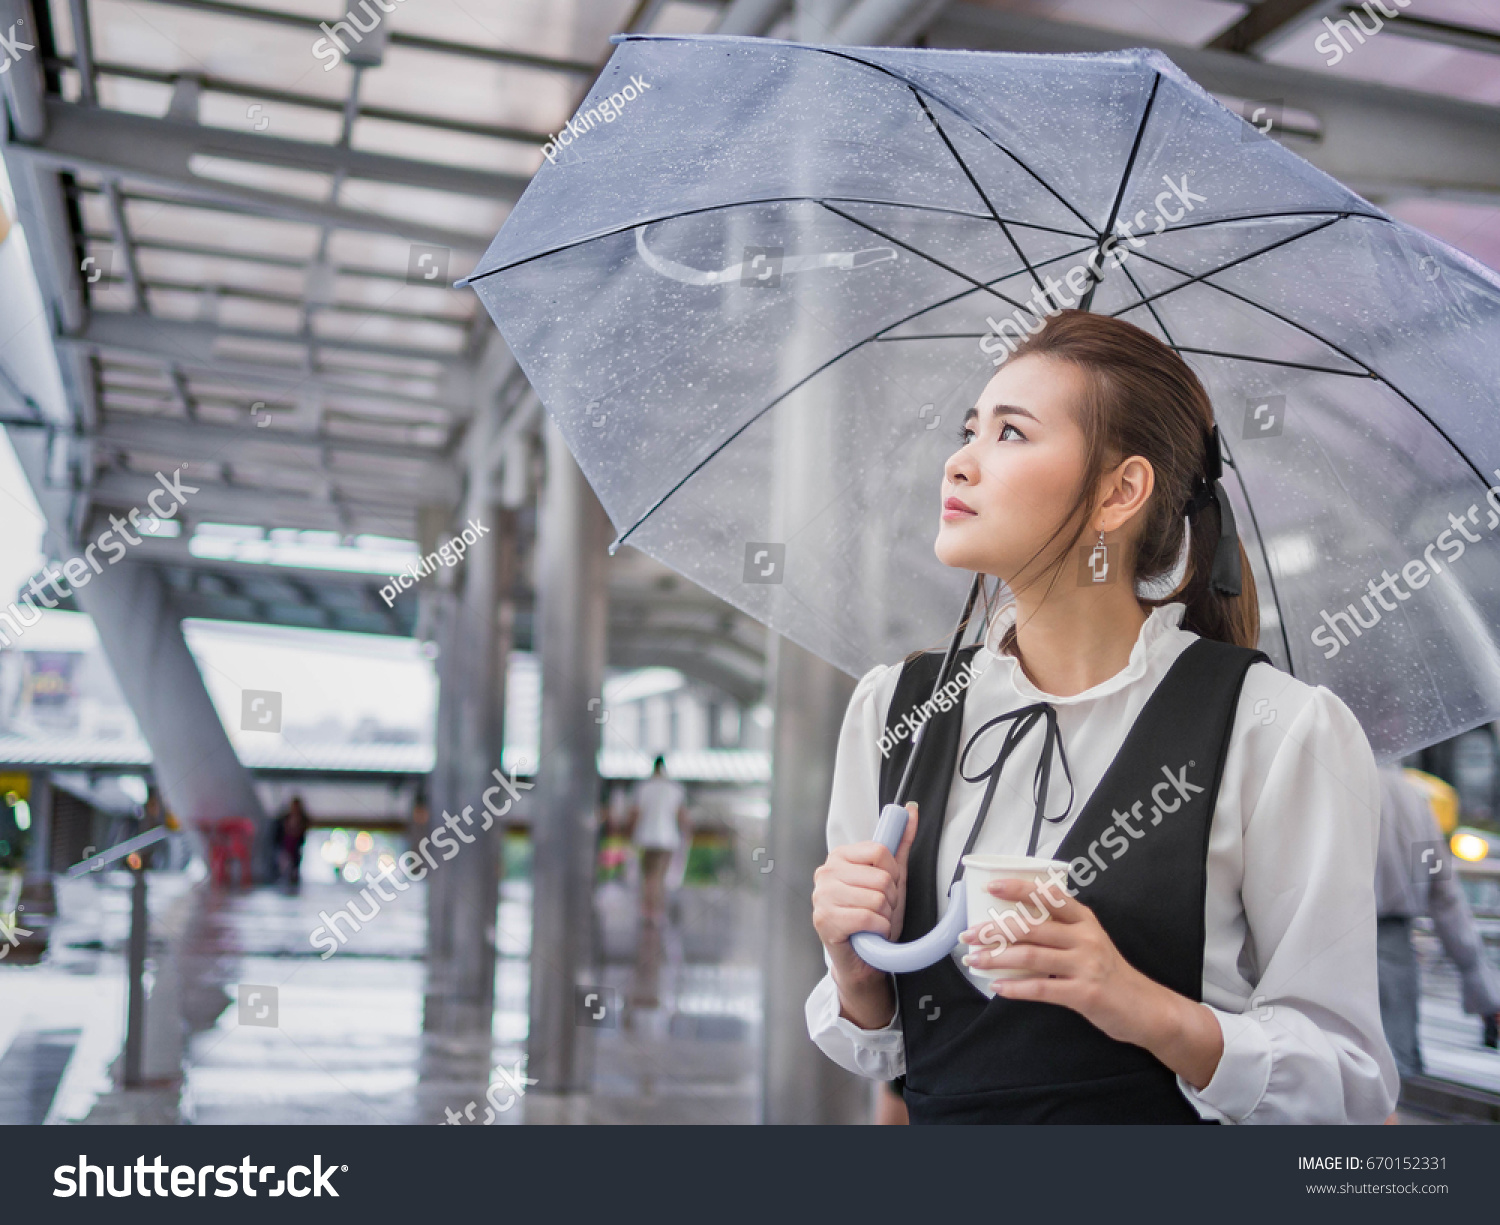 She was alone, without an umbrella, and only the hood of the light jacket rescued her from the cold rain. Noticing our hero, she turned to him for help